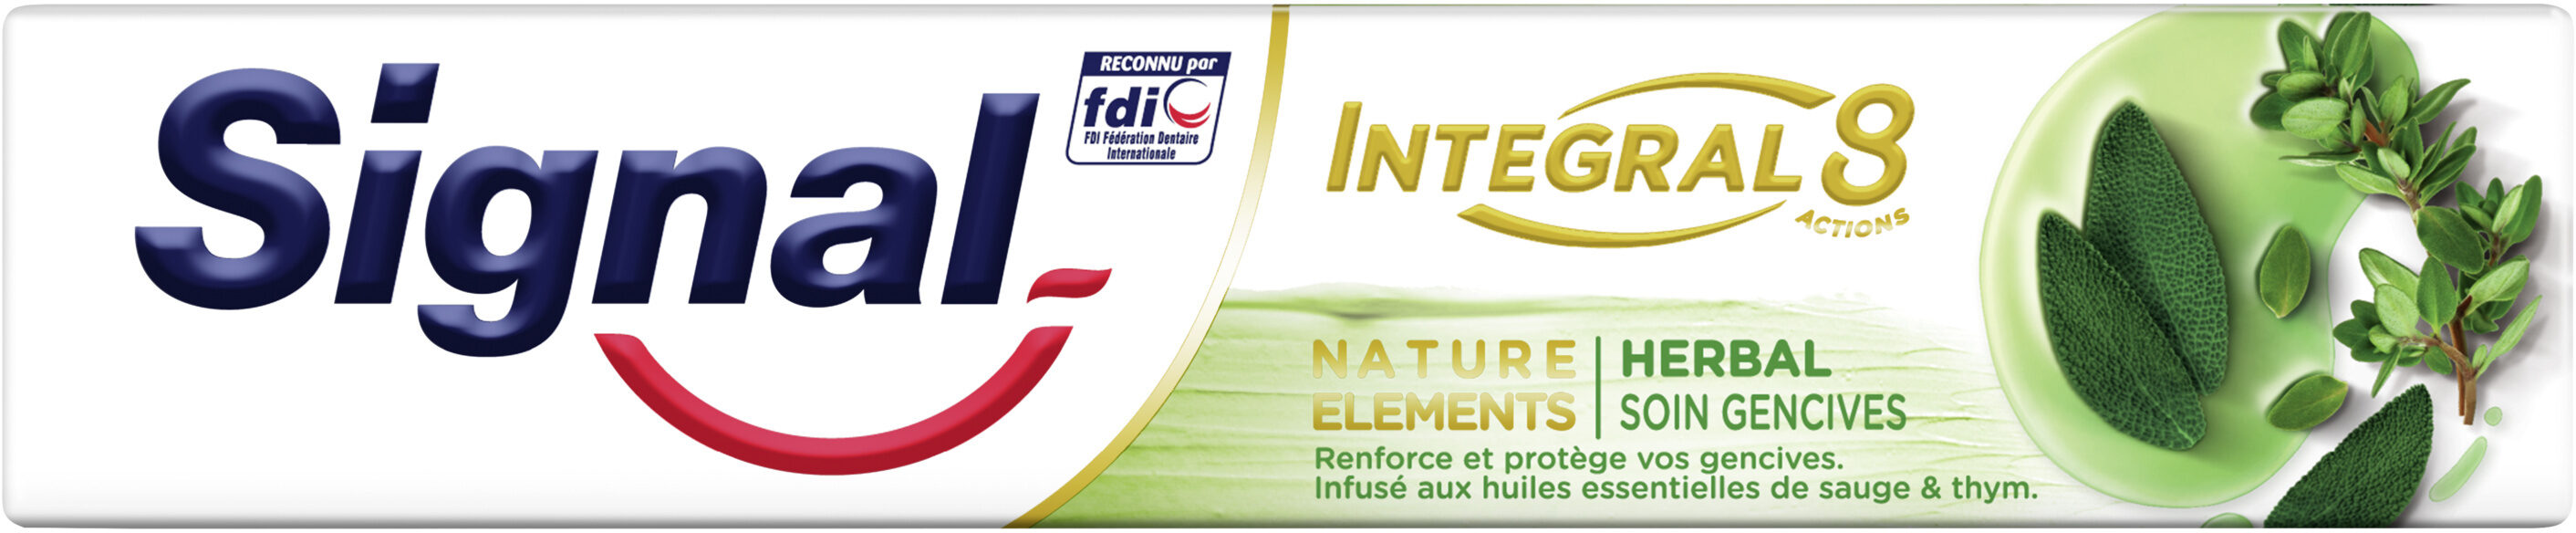 Signal Integral 8 Dentifrice Nature Elements Soin Gencives - Product - fr